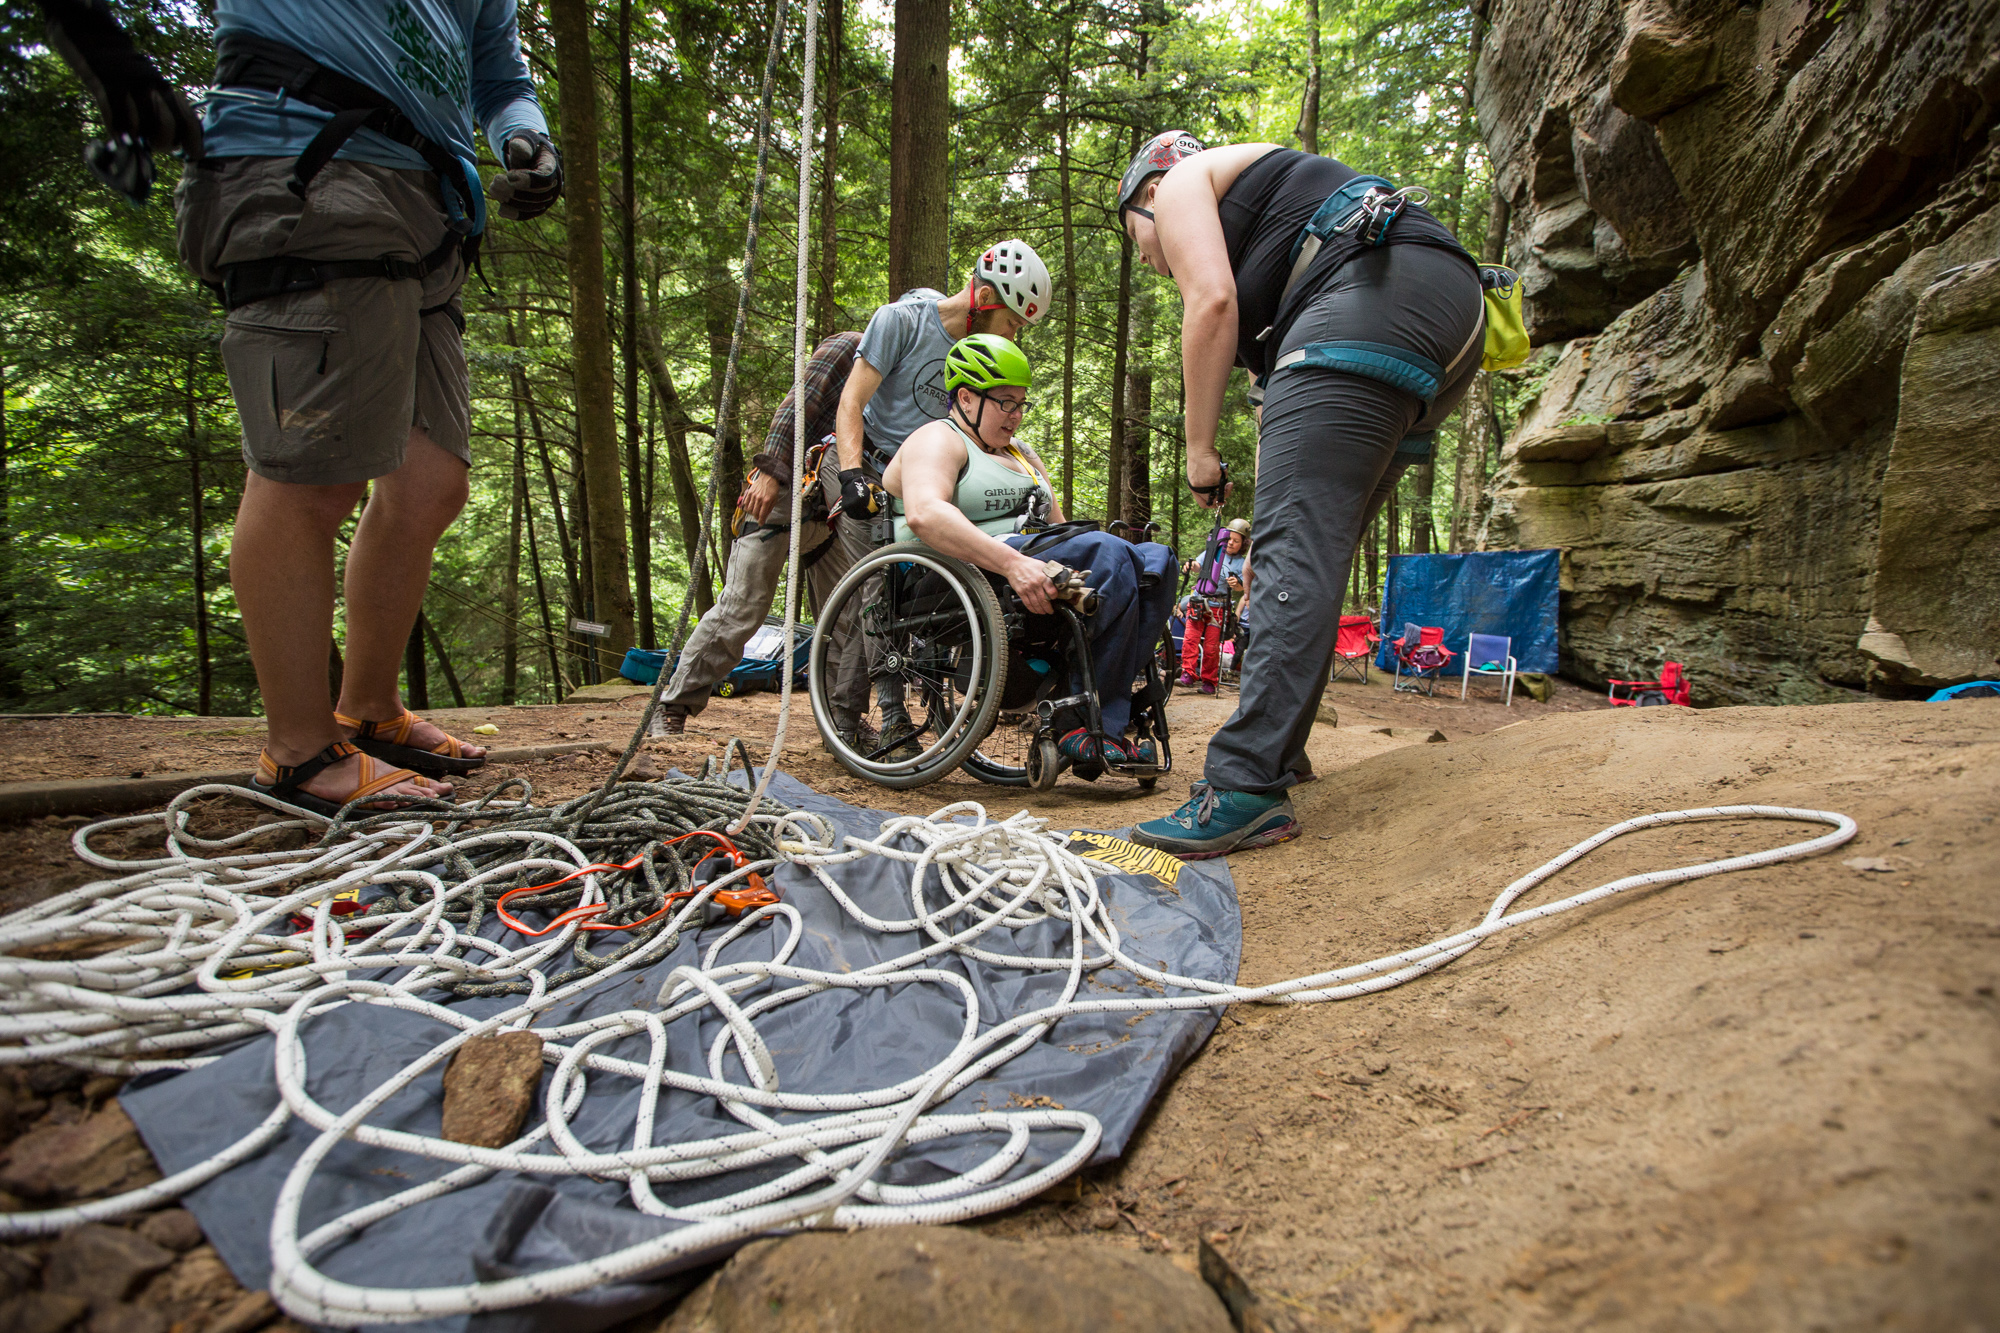 Volunteers Helping Woman in Wheelchair at Crag